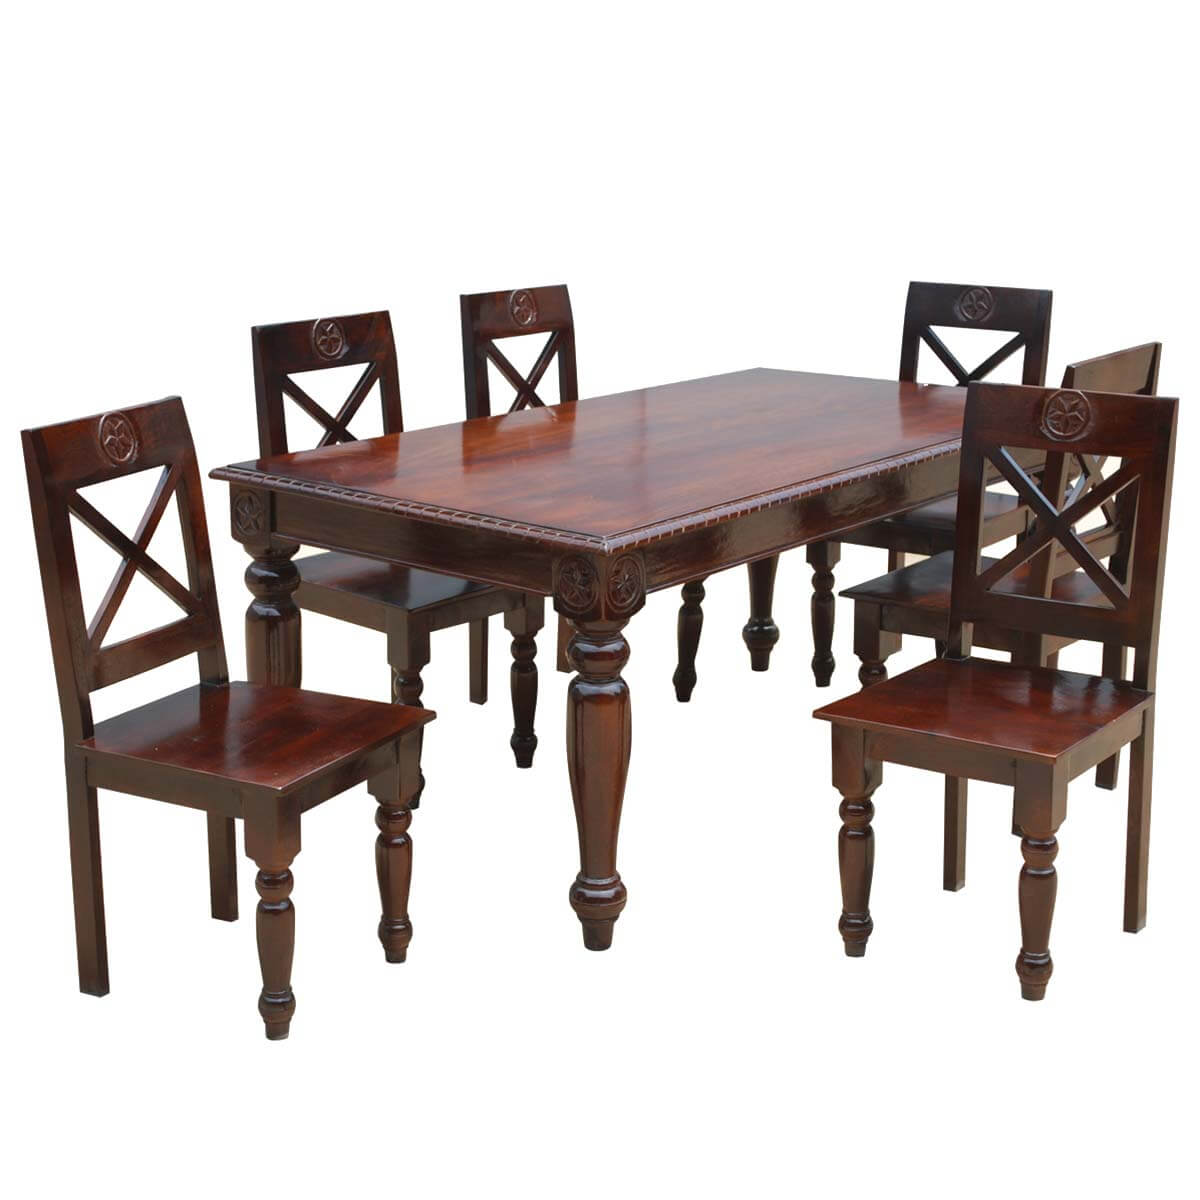 Dining Table Sets ~ Texas rustic dining table and chairs set